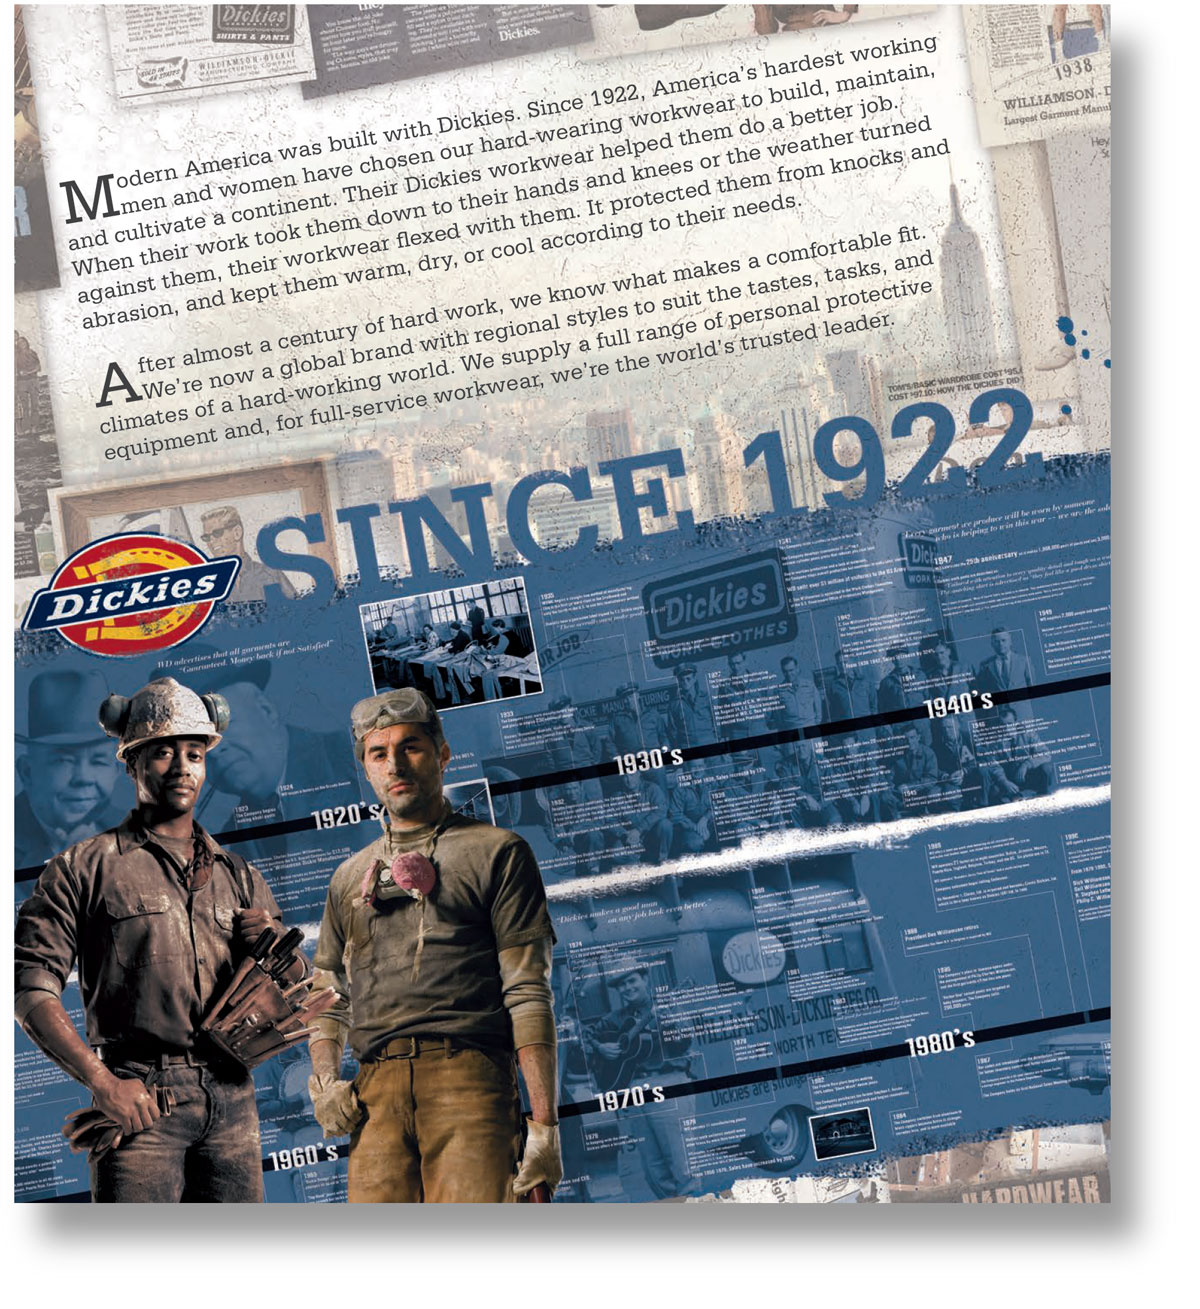 Brand heritage copywriting: page from the Dickies workwear catalogue